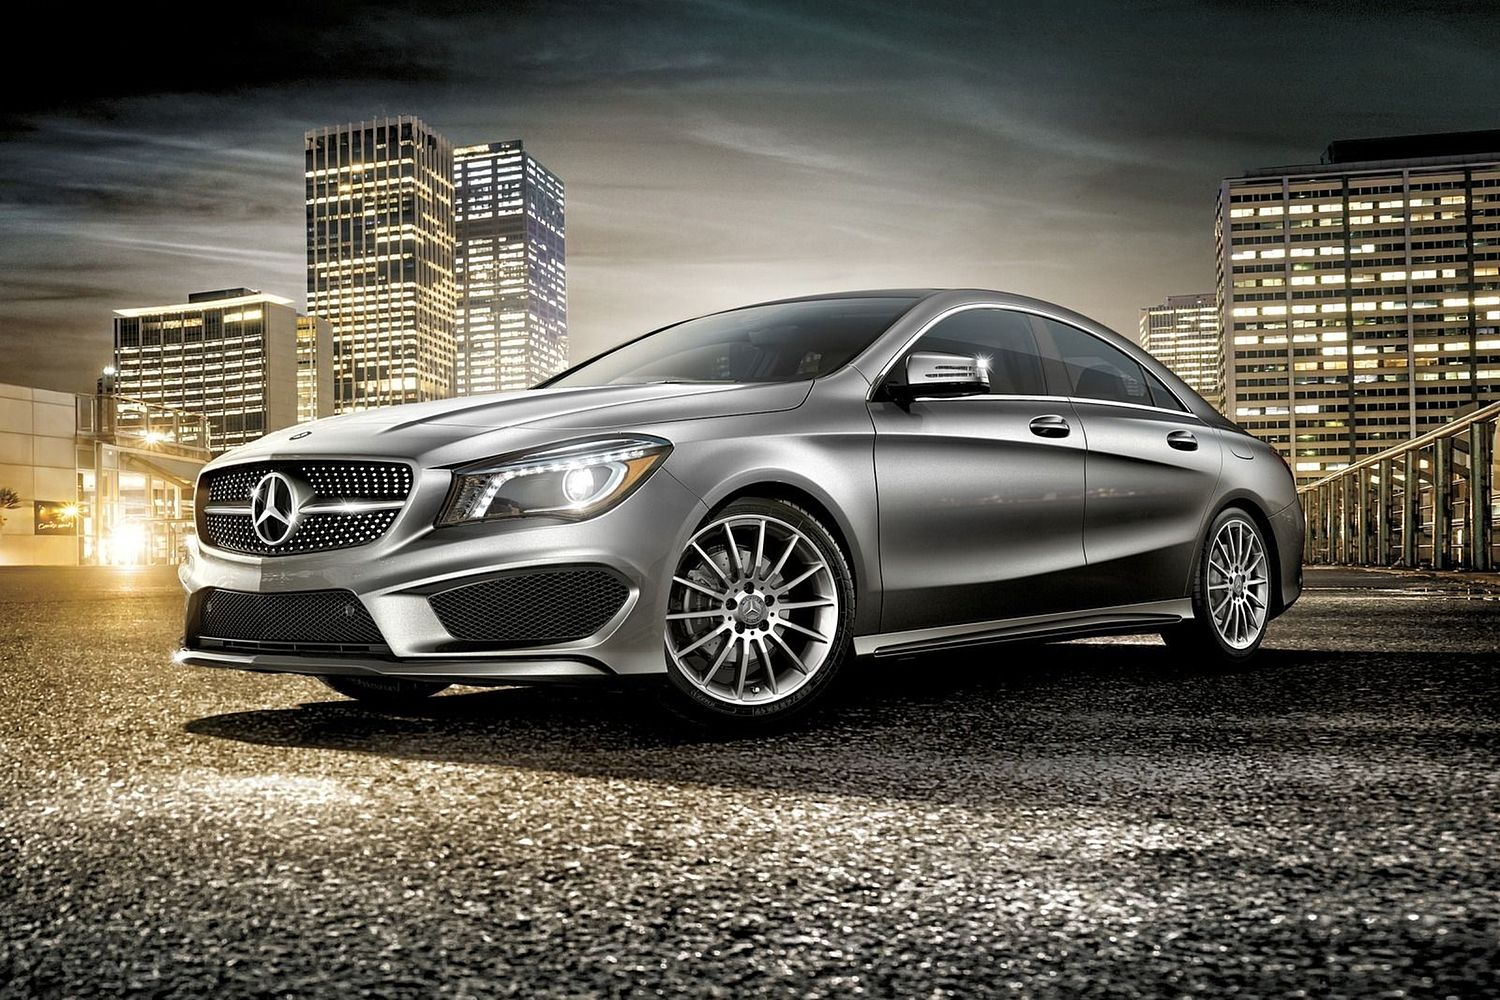 car class sedan in for thailand gallery new amg phaholyothin bang chatuchak sale bangkok en metropolitan sue mercedes price cla dynamic benz